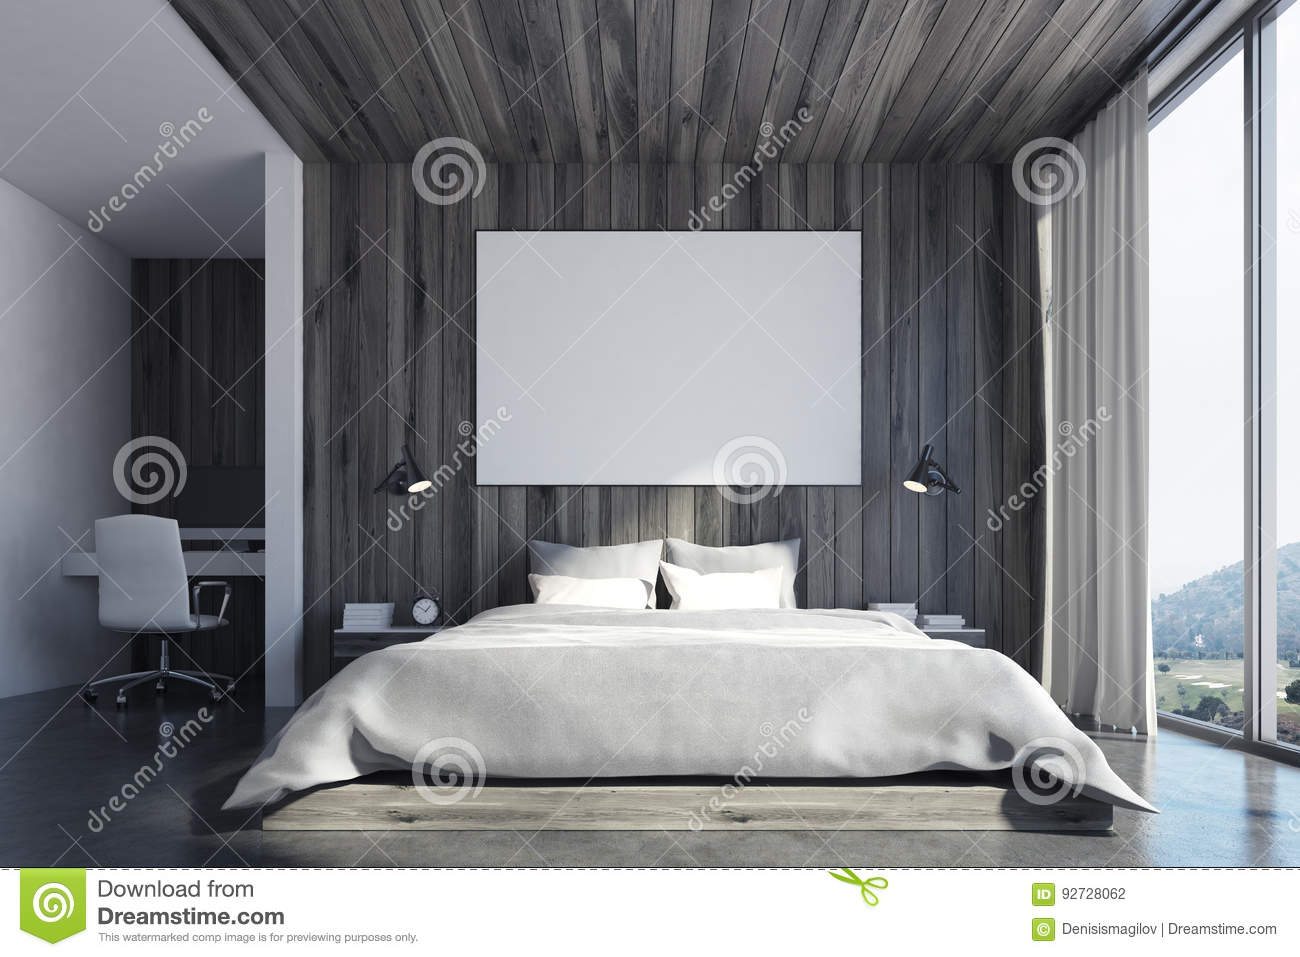 Eco Bedroom With Poster Front Stock Illustration Illustration Of Pillow House 92728062